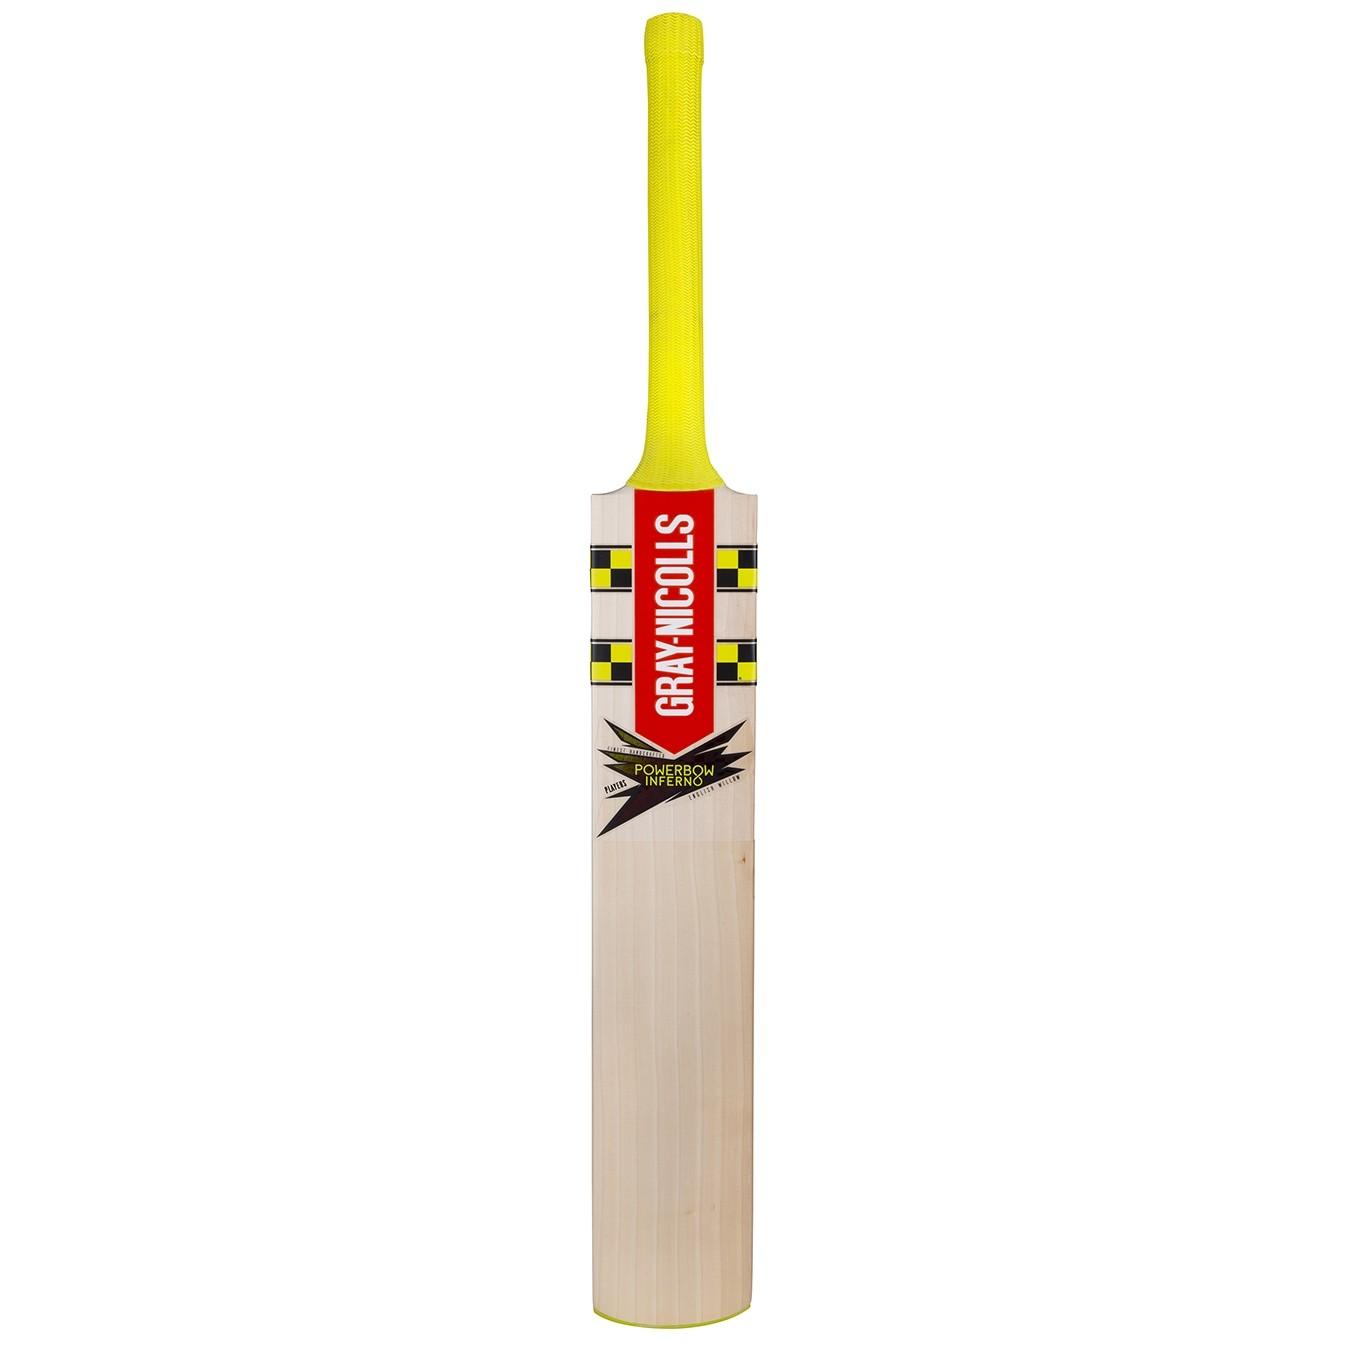 2021 Gray Nicolls Powerbow Inferno Players Cricket Bat